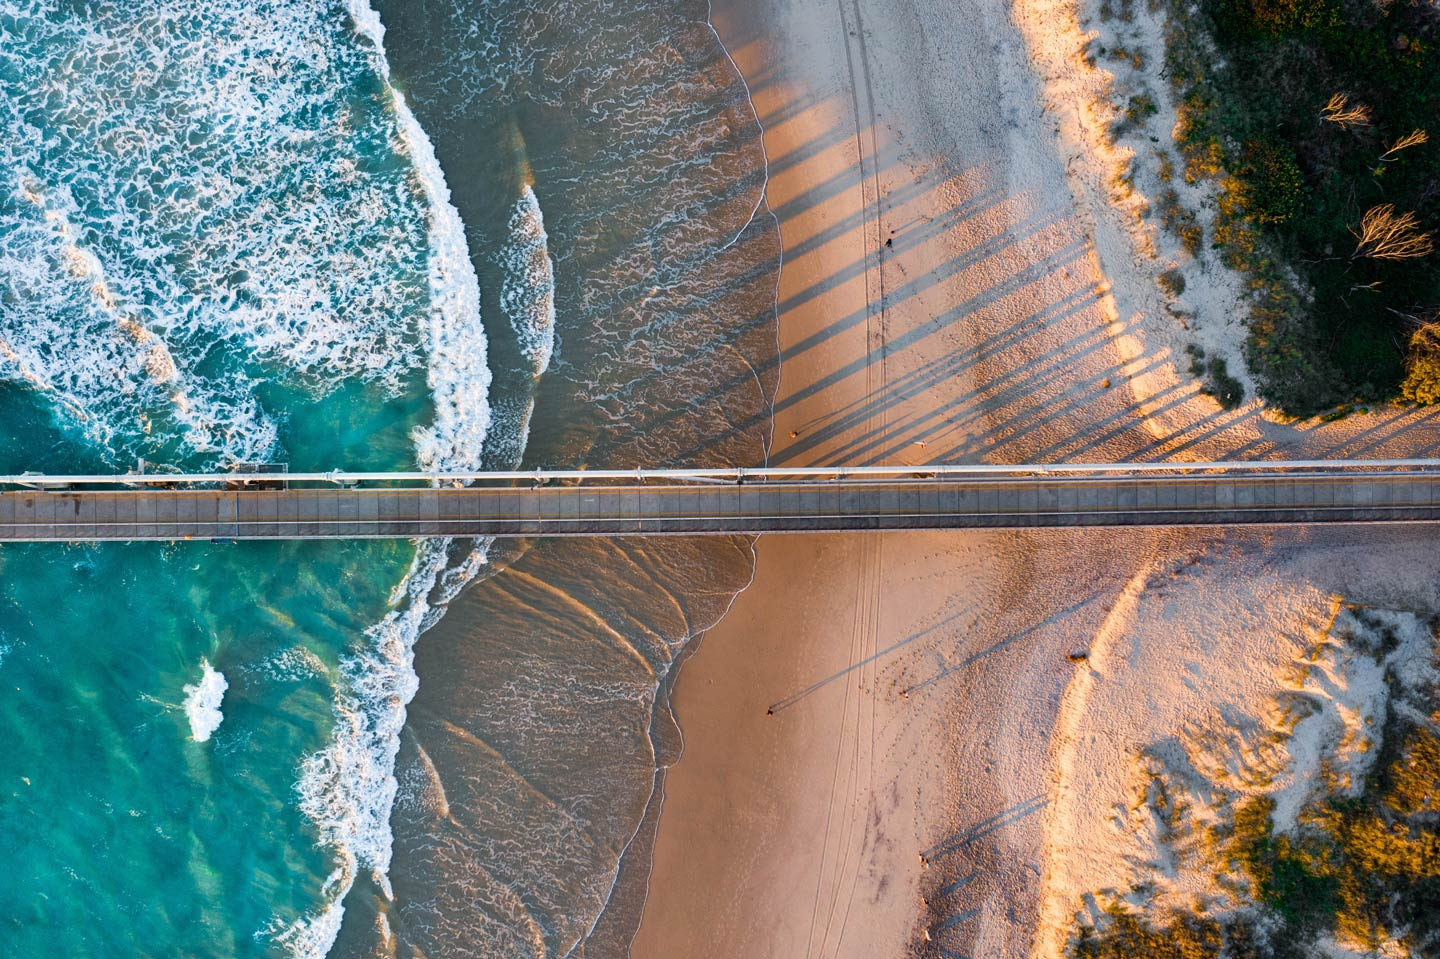 An aerial view of a sunrise over Sebastian Inlet, showing the waves crashing against the shore and the pier